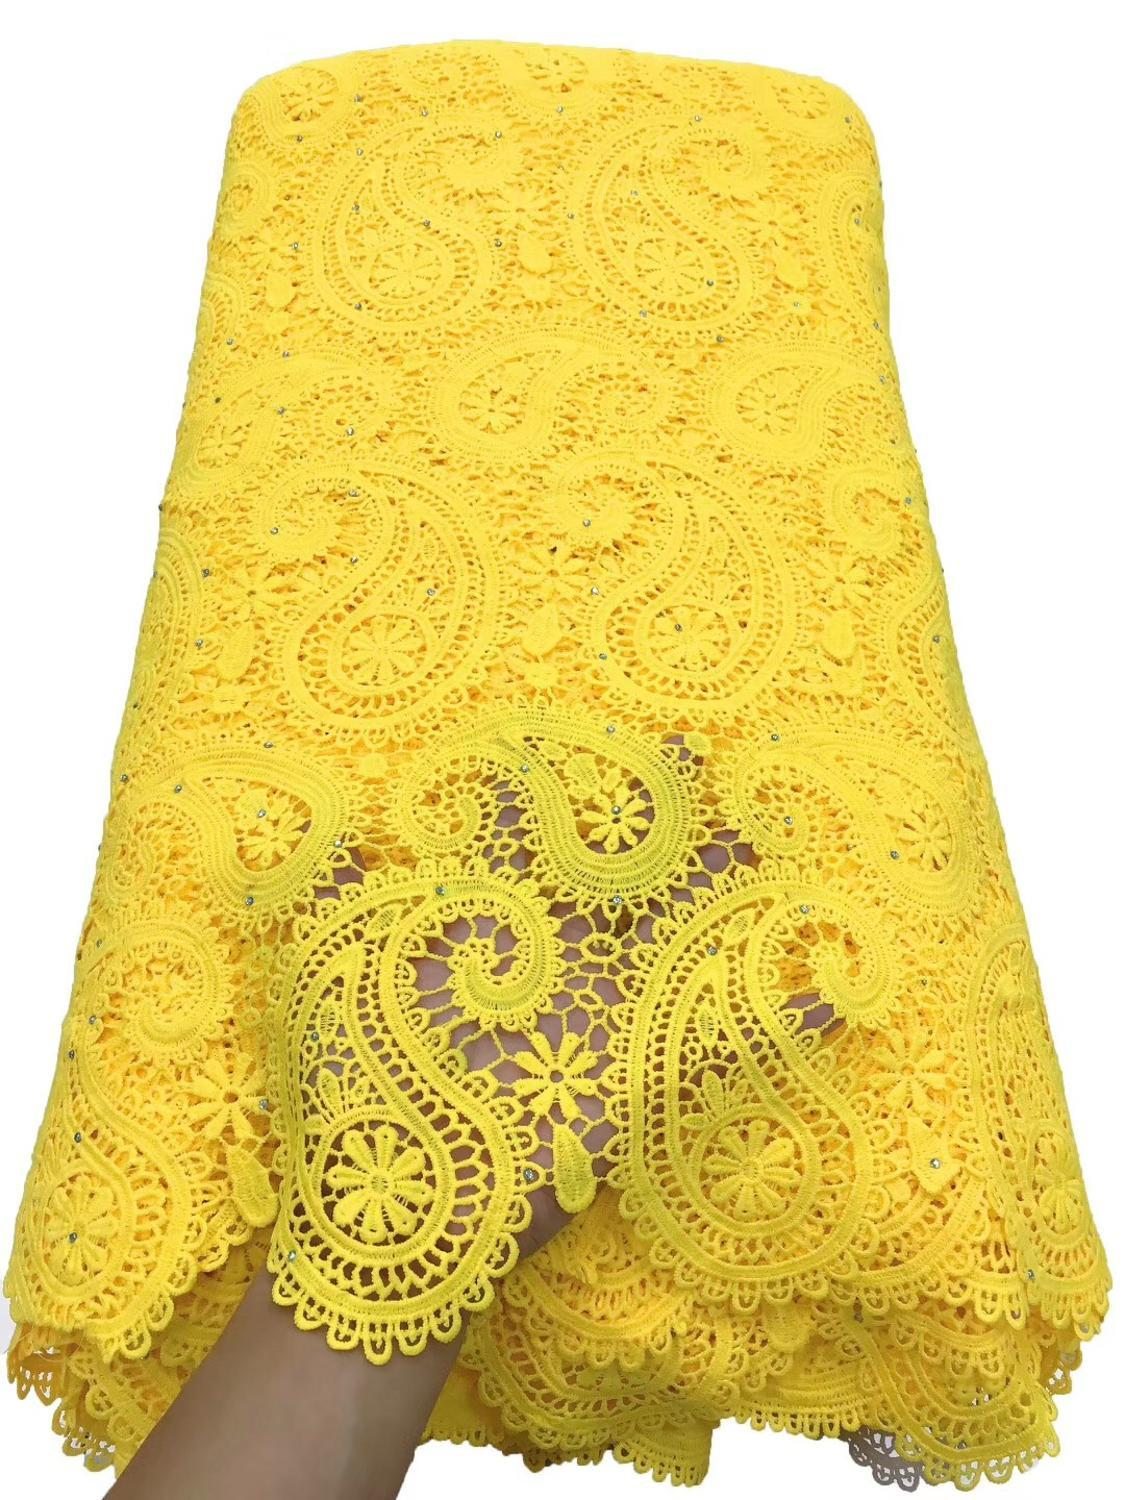 Latest Hot-selling Guipure Lace Excellent African Swiss Cord Lace fabric.